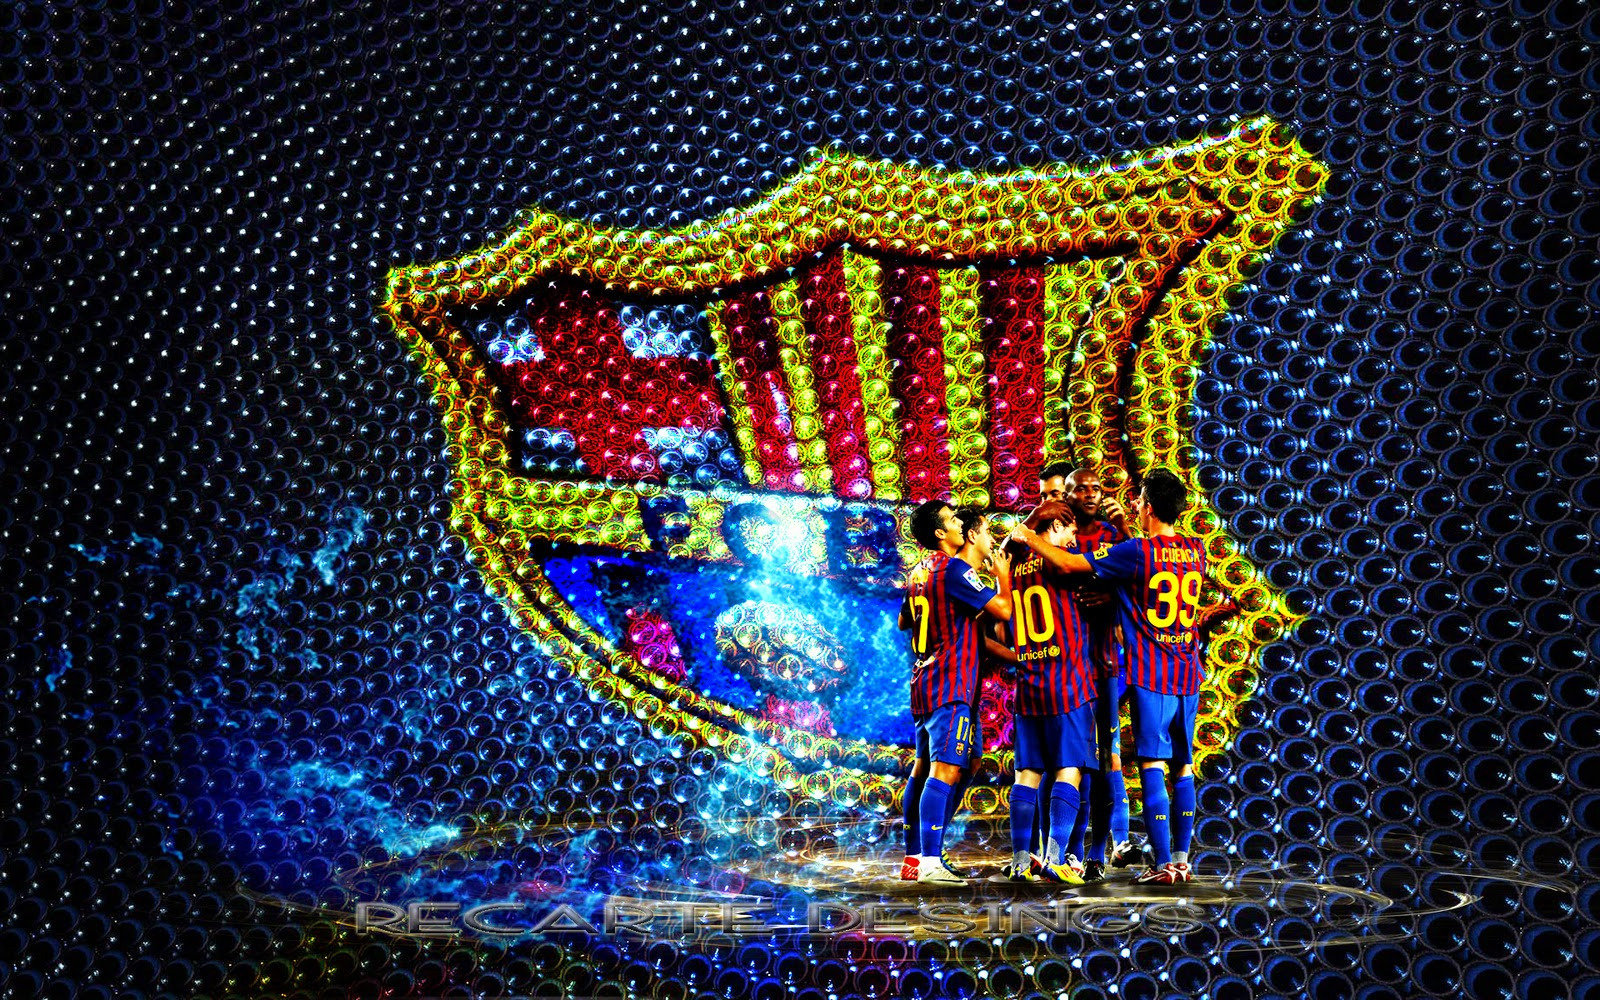 Fc Barcelona Wikipedia >> Barcelona Football Club Wallpaper - Football Wallpaper HD